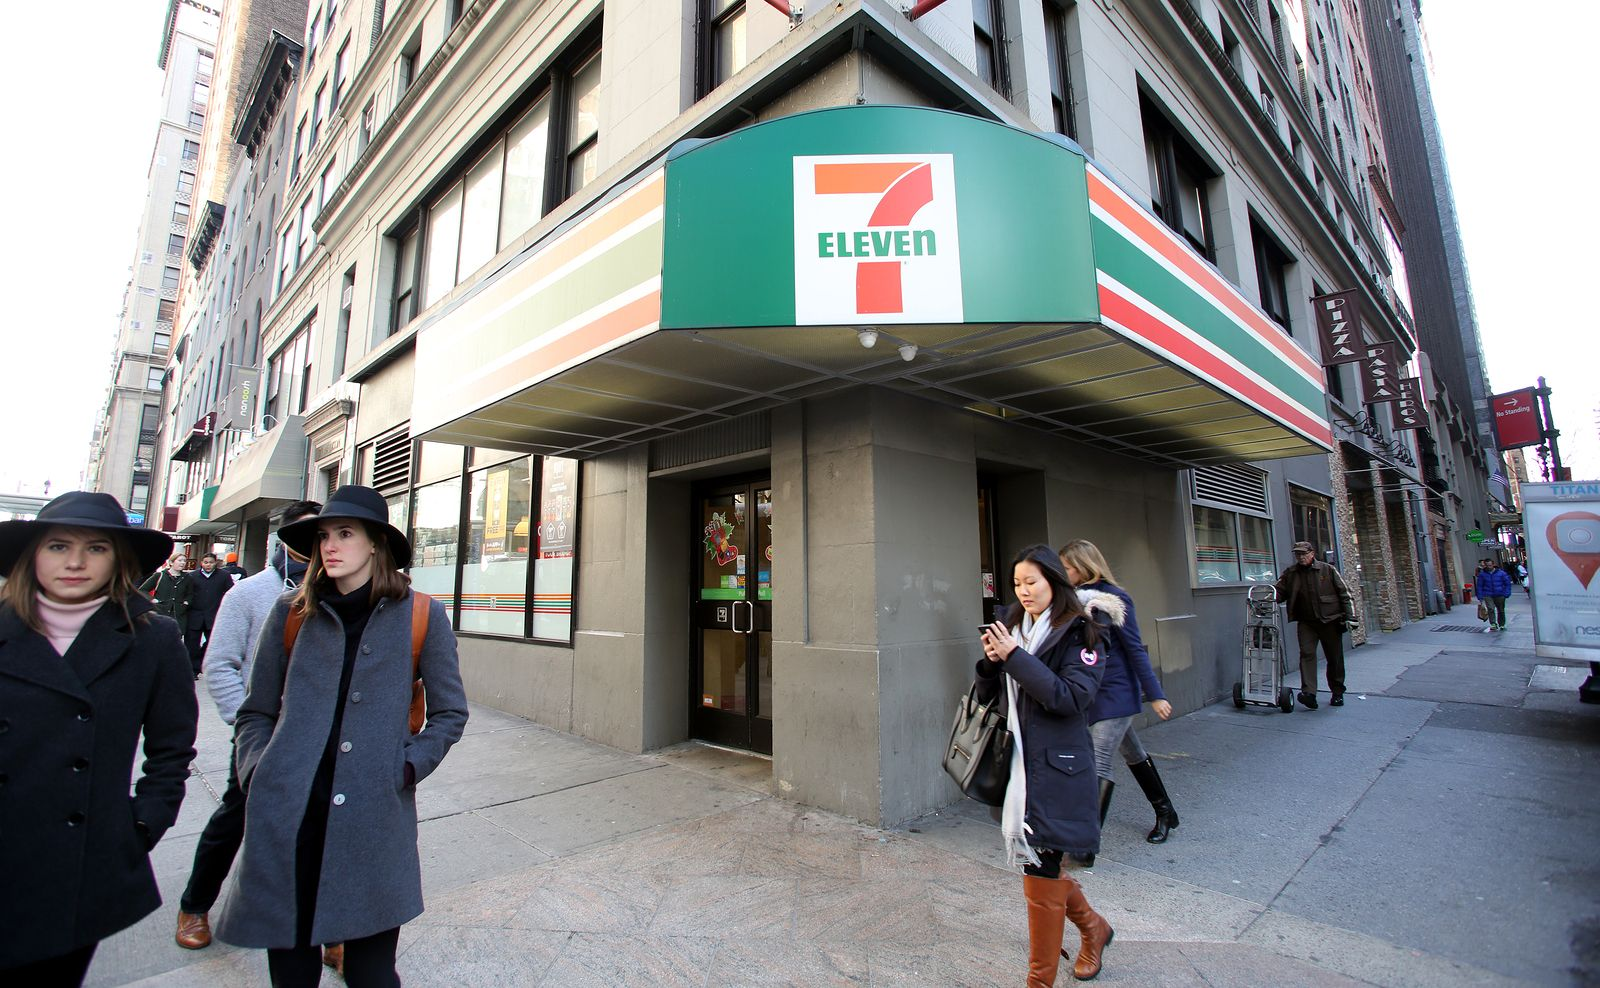 7-Eleven cleans up at AACS awards | Inside Franchise Business